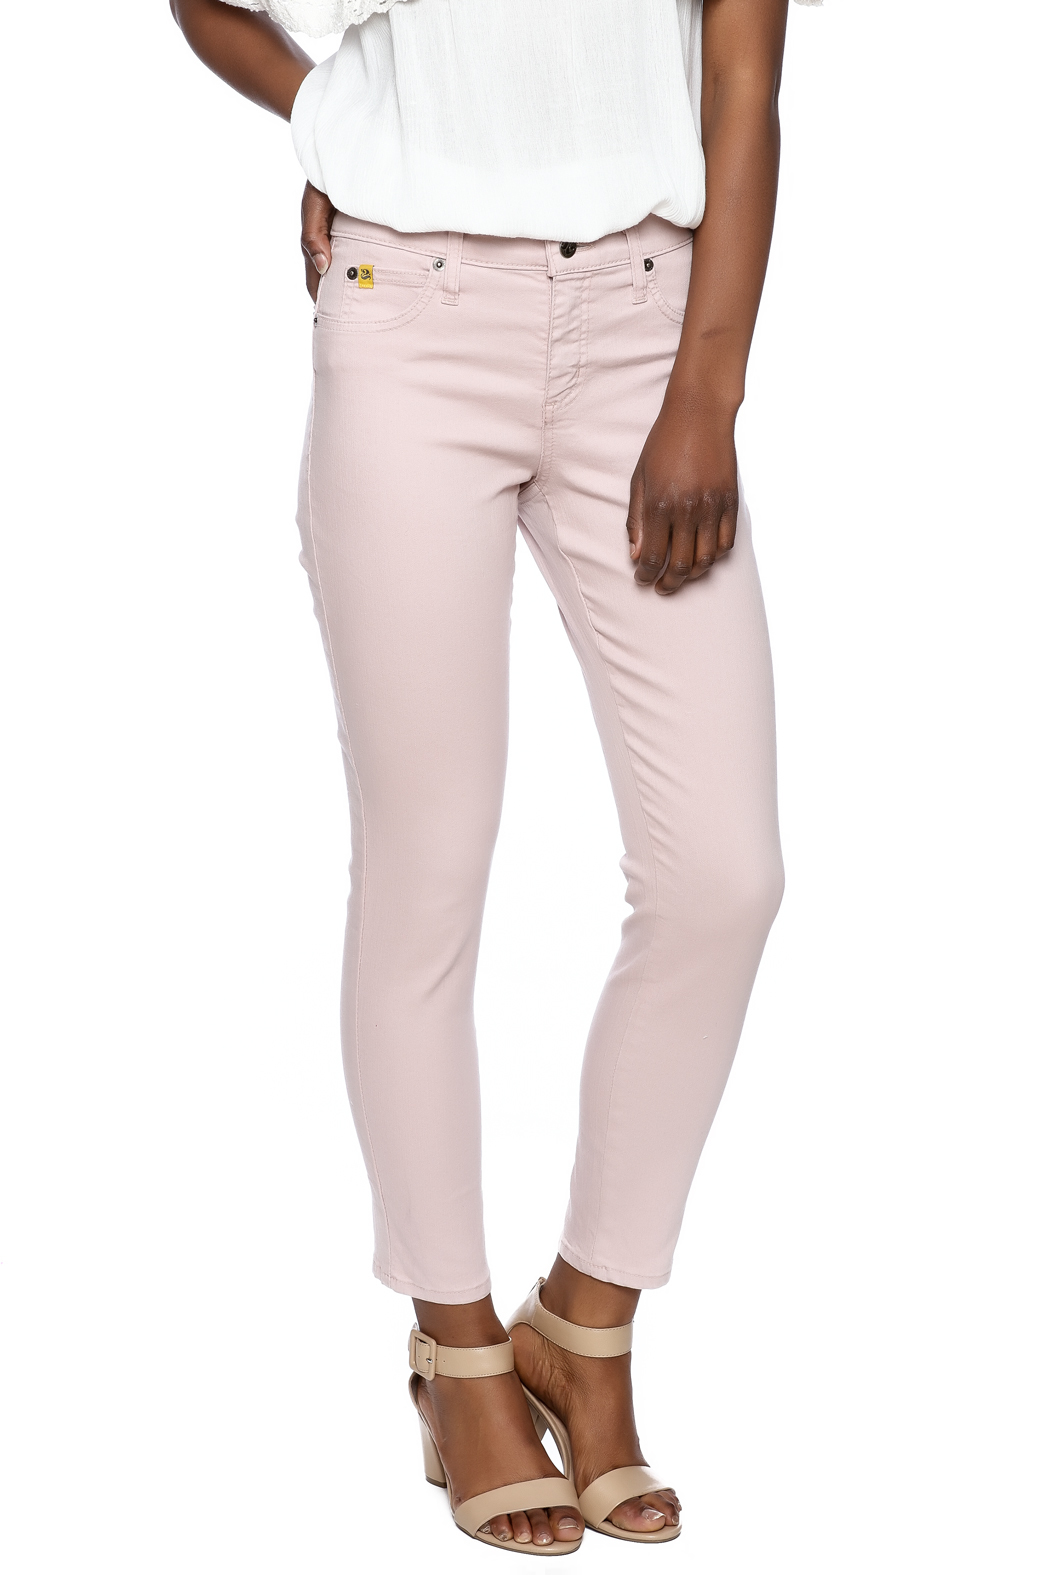 Second Yoga Jeans High Rise Ankle Jean From Canada By The